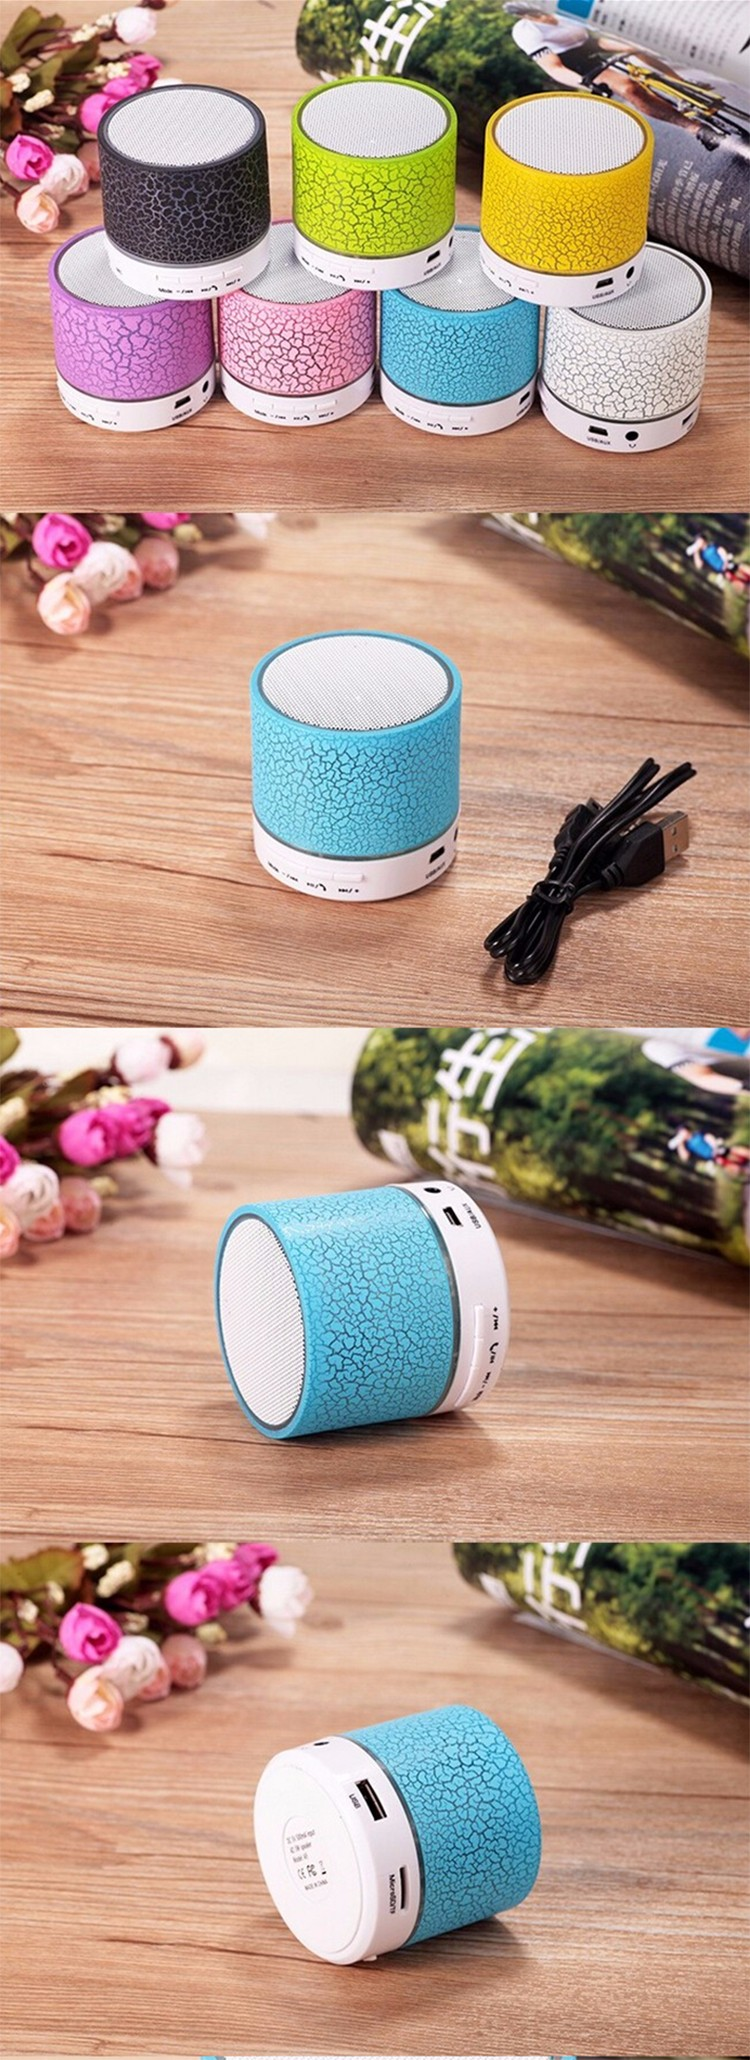 Powered outdoor wireless mini speaker